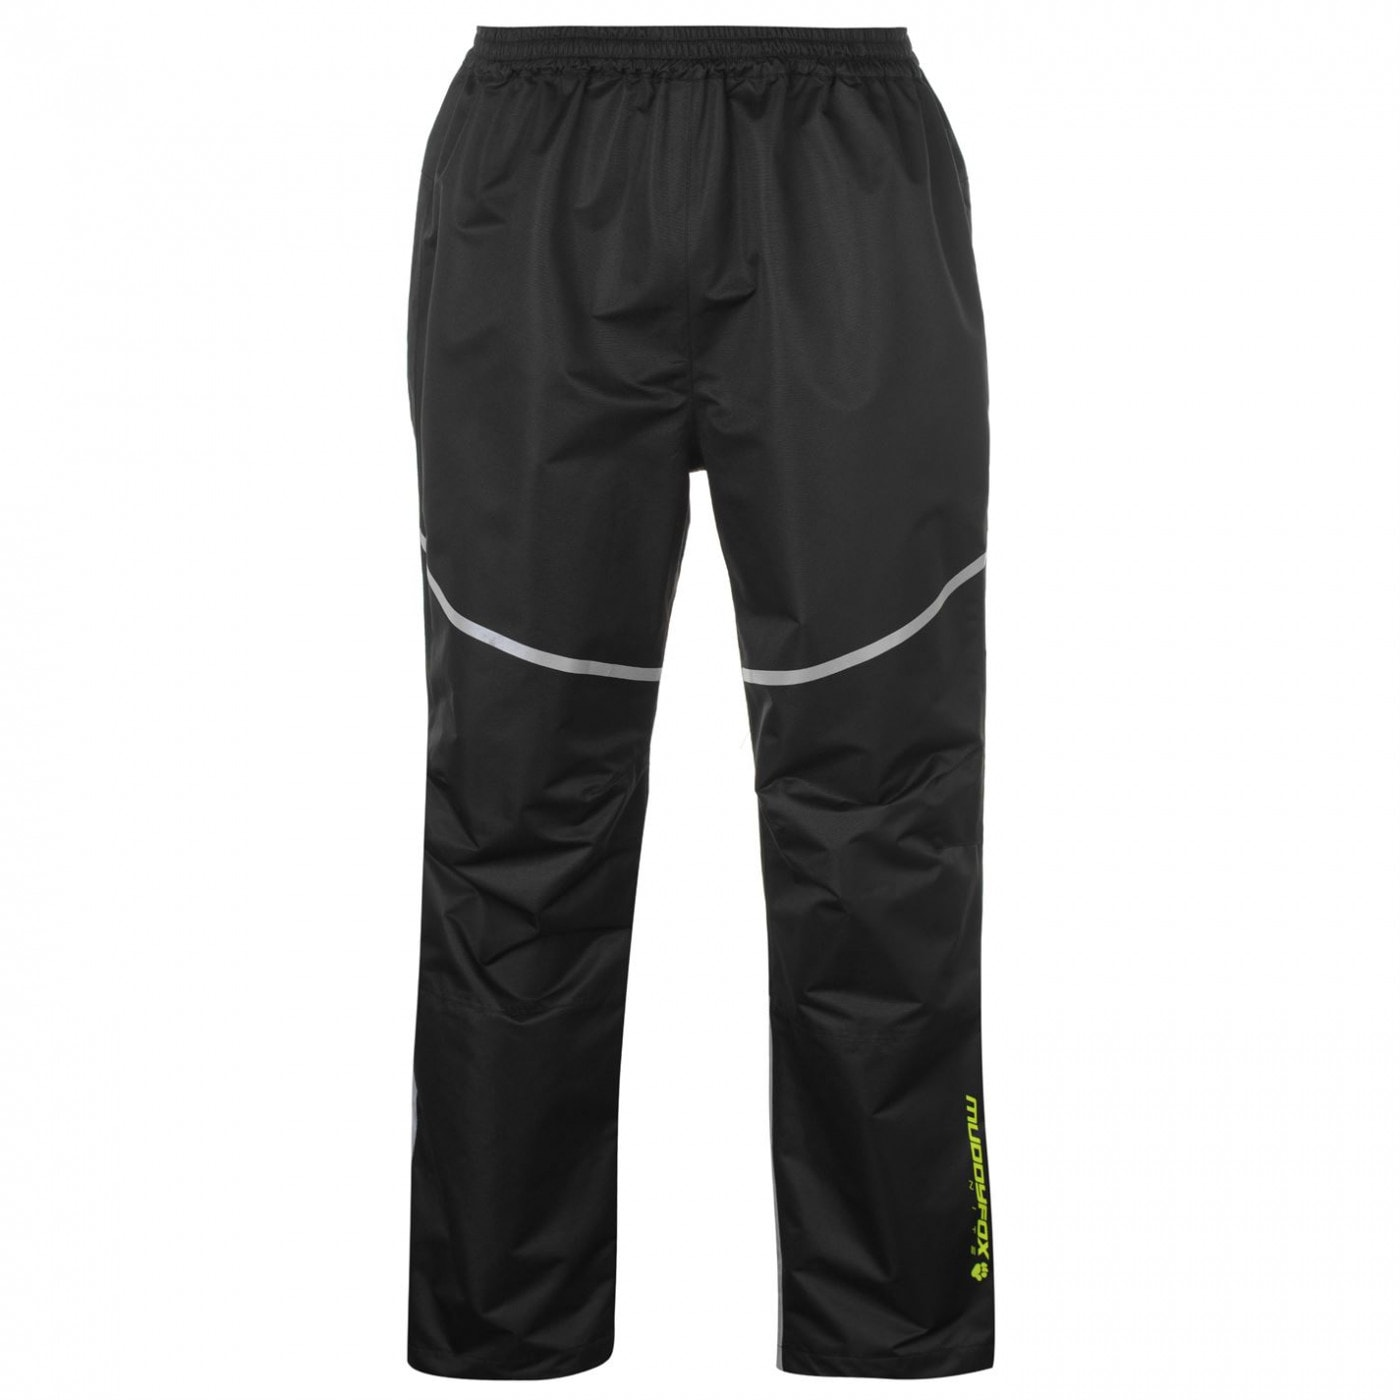 Muddyfox Nite Waterproof Trousers Mens